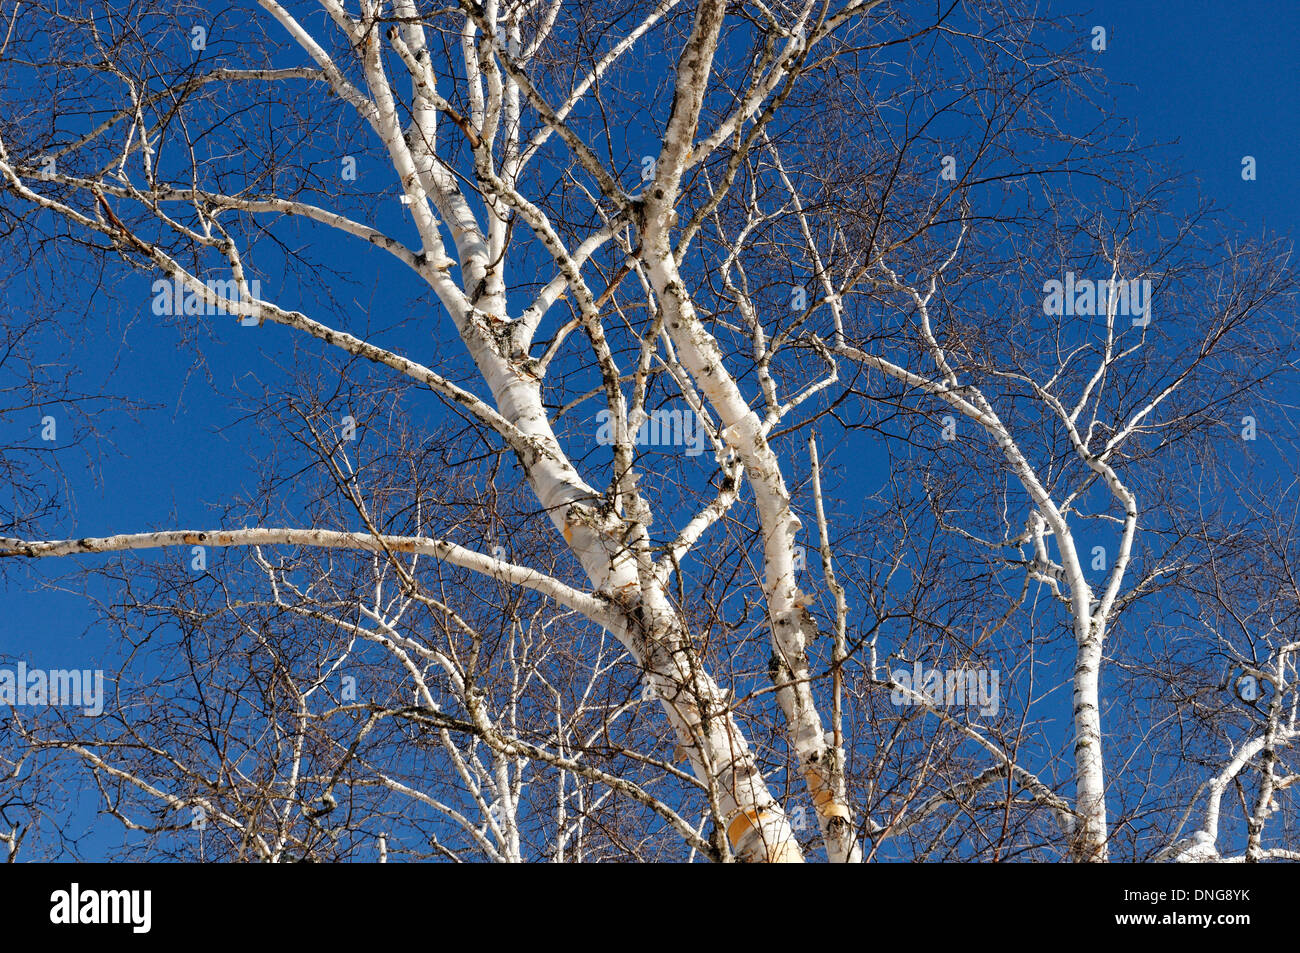 Silver birch trees against a clear blue sky - Stock Image